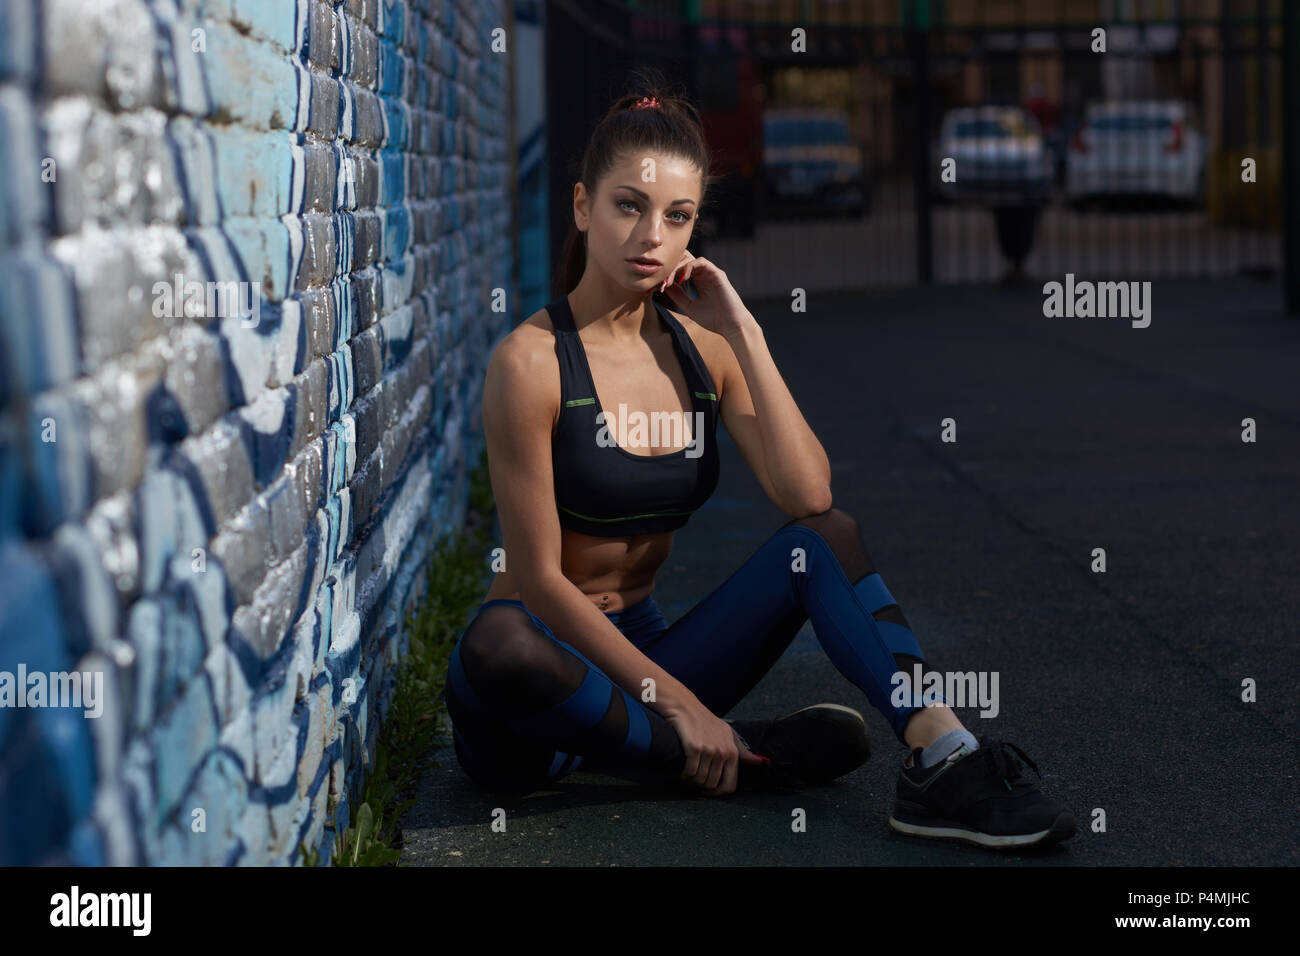 770beaacbd Young beautiful fitness bikini girl in black top and blue leggings sitting  on ground at outdoor workout gym space and looking at you. Sport fitness co